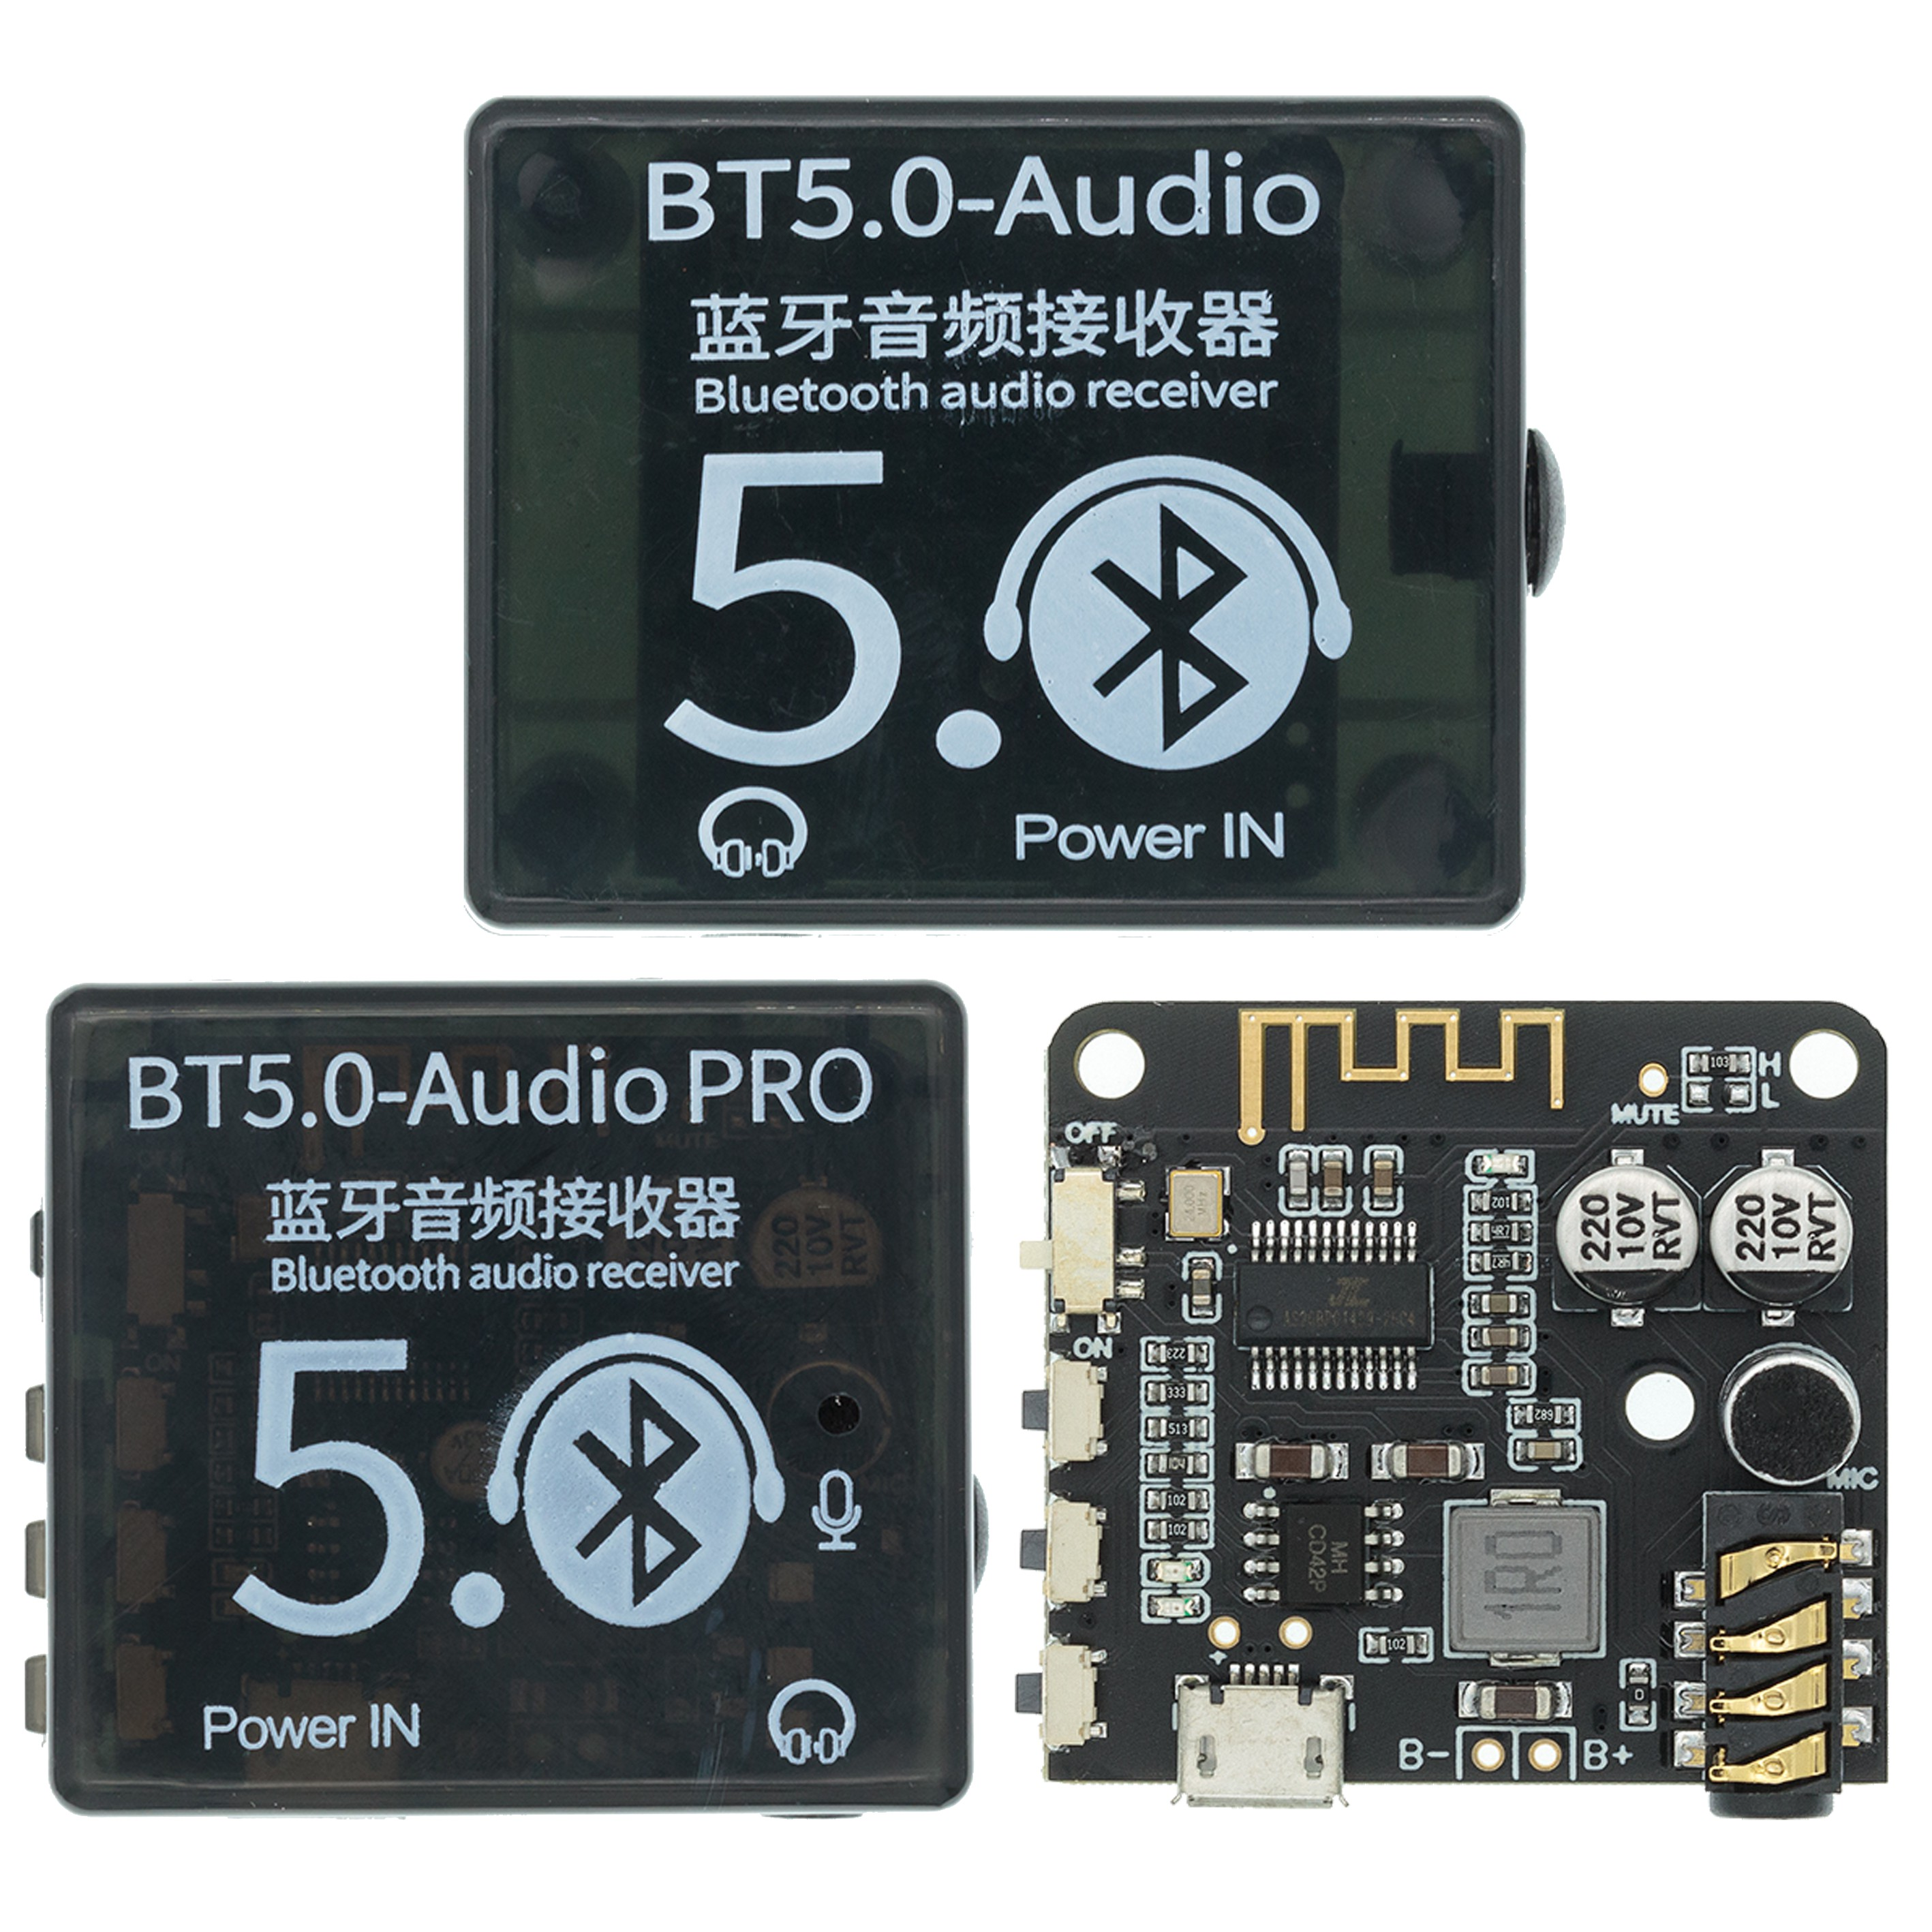 Mini Bluetooth 5.0 Decoder Board Audio Receiver BT5.0 PRO MP3 Lossless Player Wireless Stereo Music Amplifier Module With Case